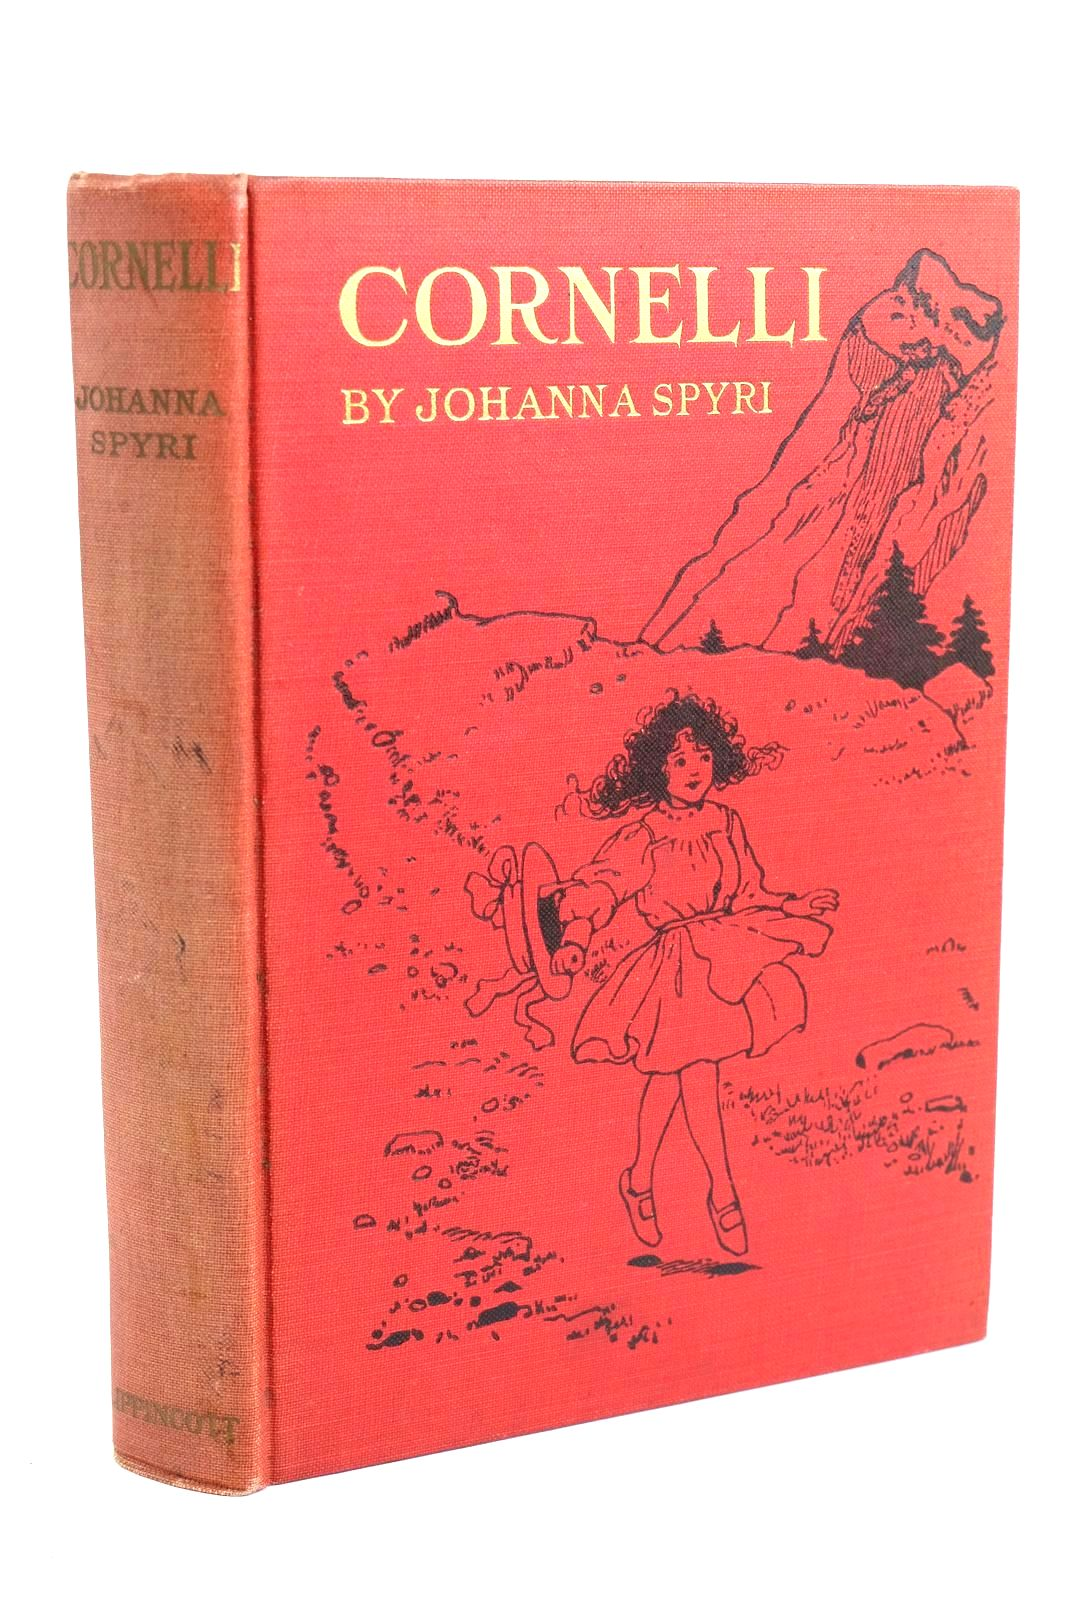 Photo of CORNELLI written by Spyri, Johanna Stork, Elisabeth P. Stork, Charles Wharton illustrated by Kirk, Maria L. published by J.B. Lippincott Company (STOCK CODE: 1320461)  for sale by Stella & Rose's Books